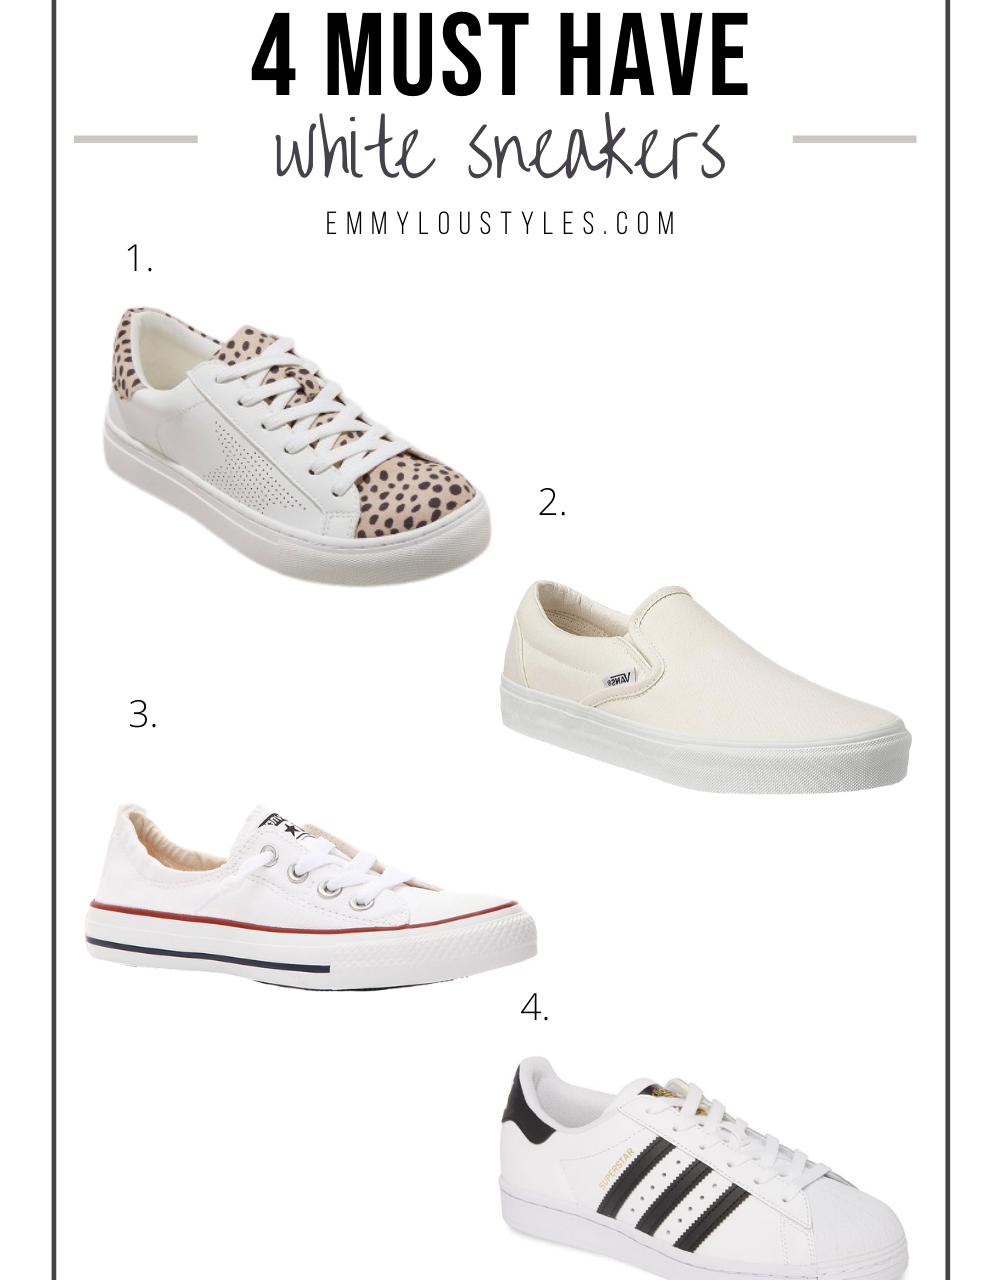 4 Must Have White Sneakers